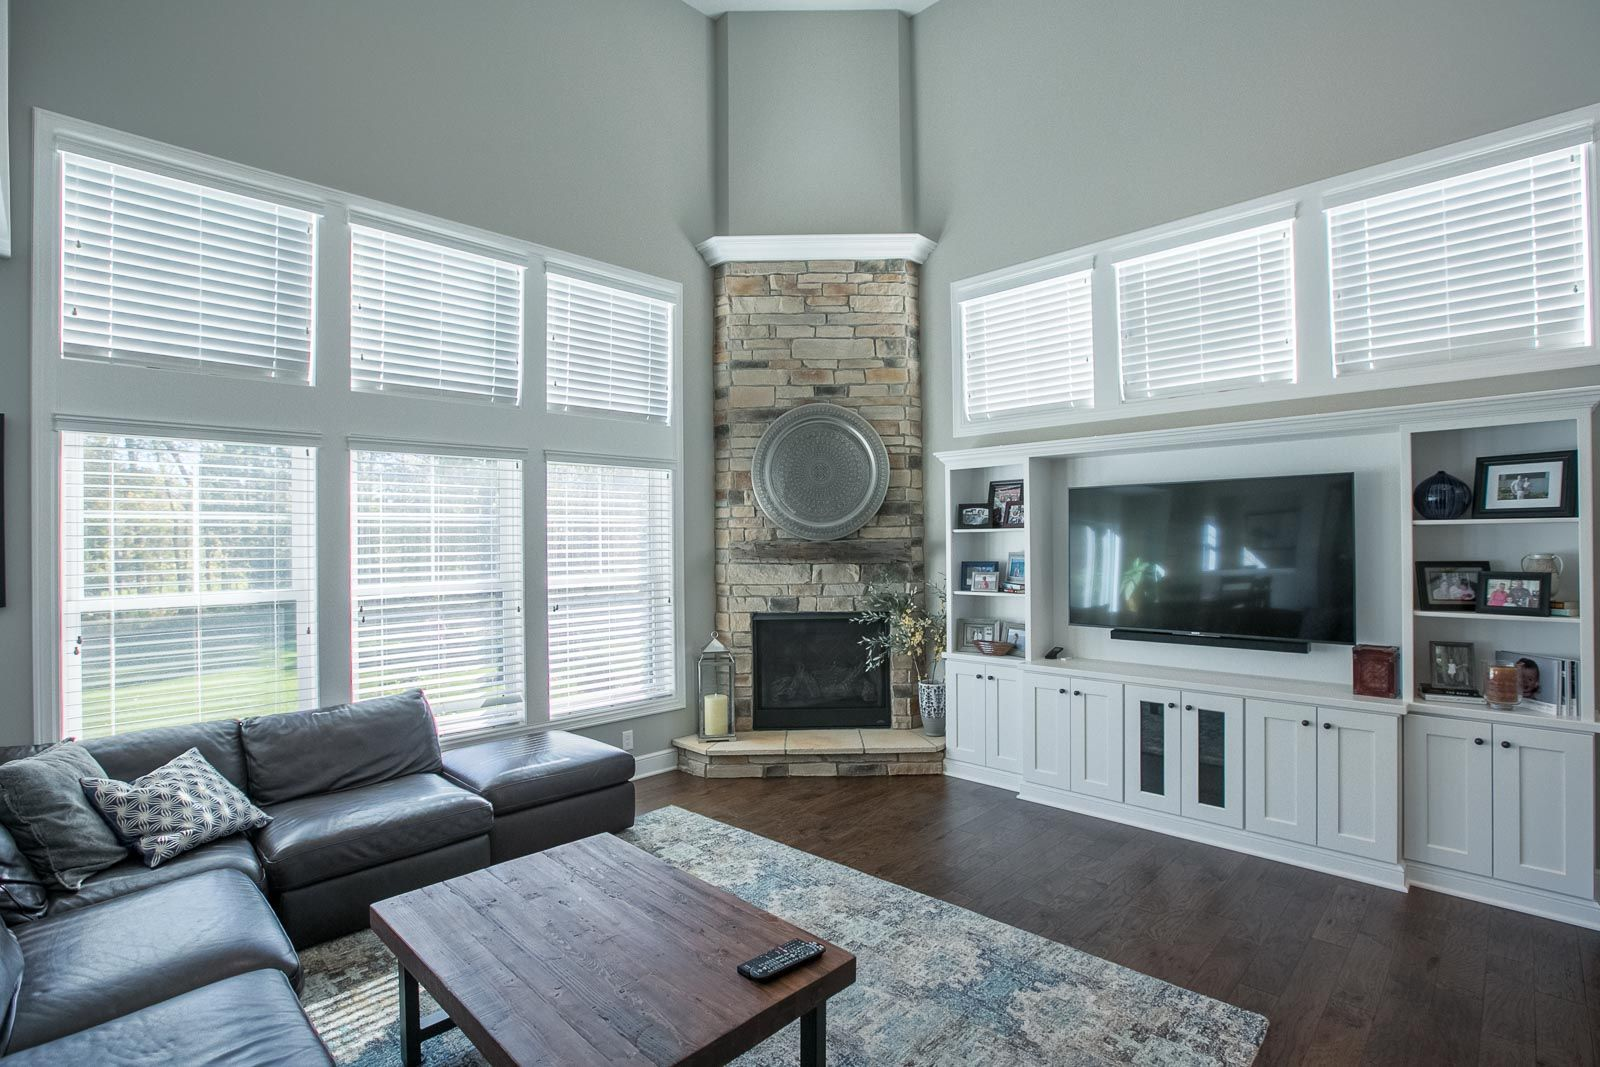 Living Area featured in the Maplewood C1 By Classic Homes in Akron, OH